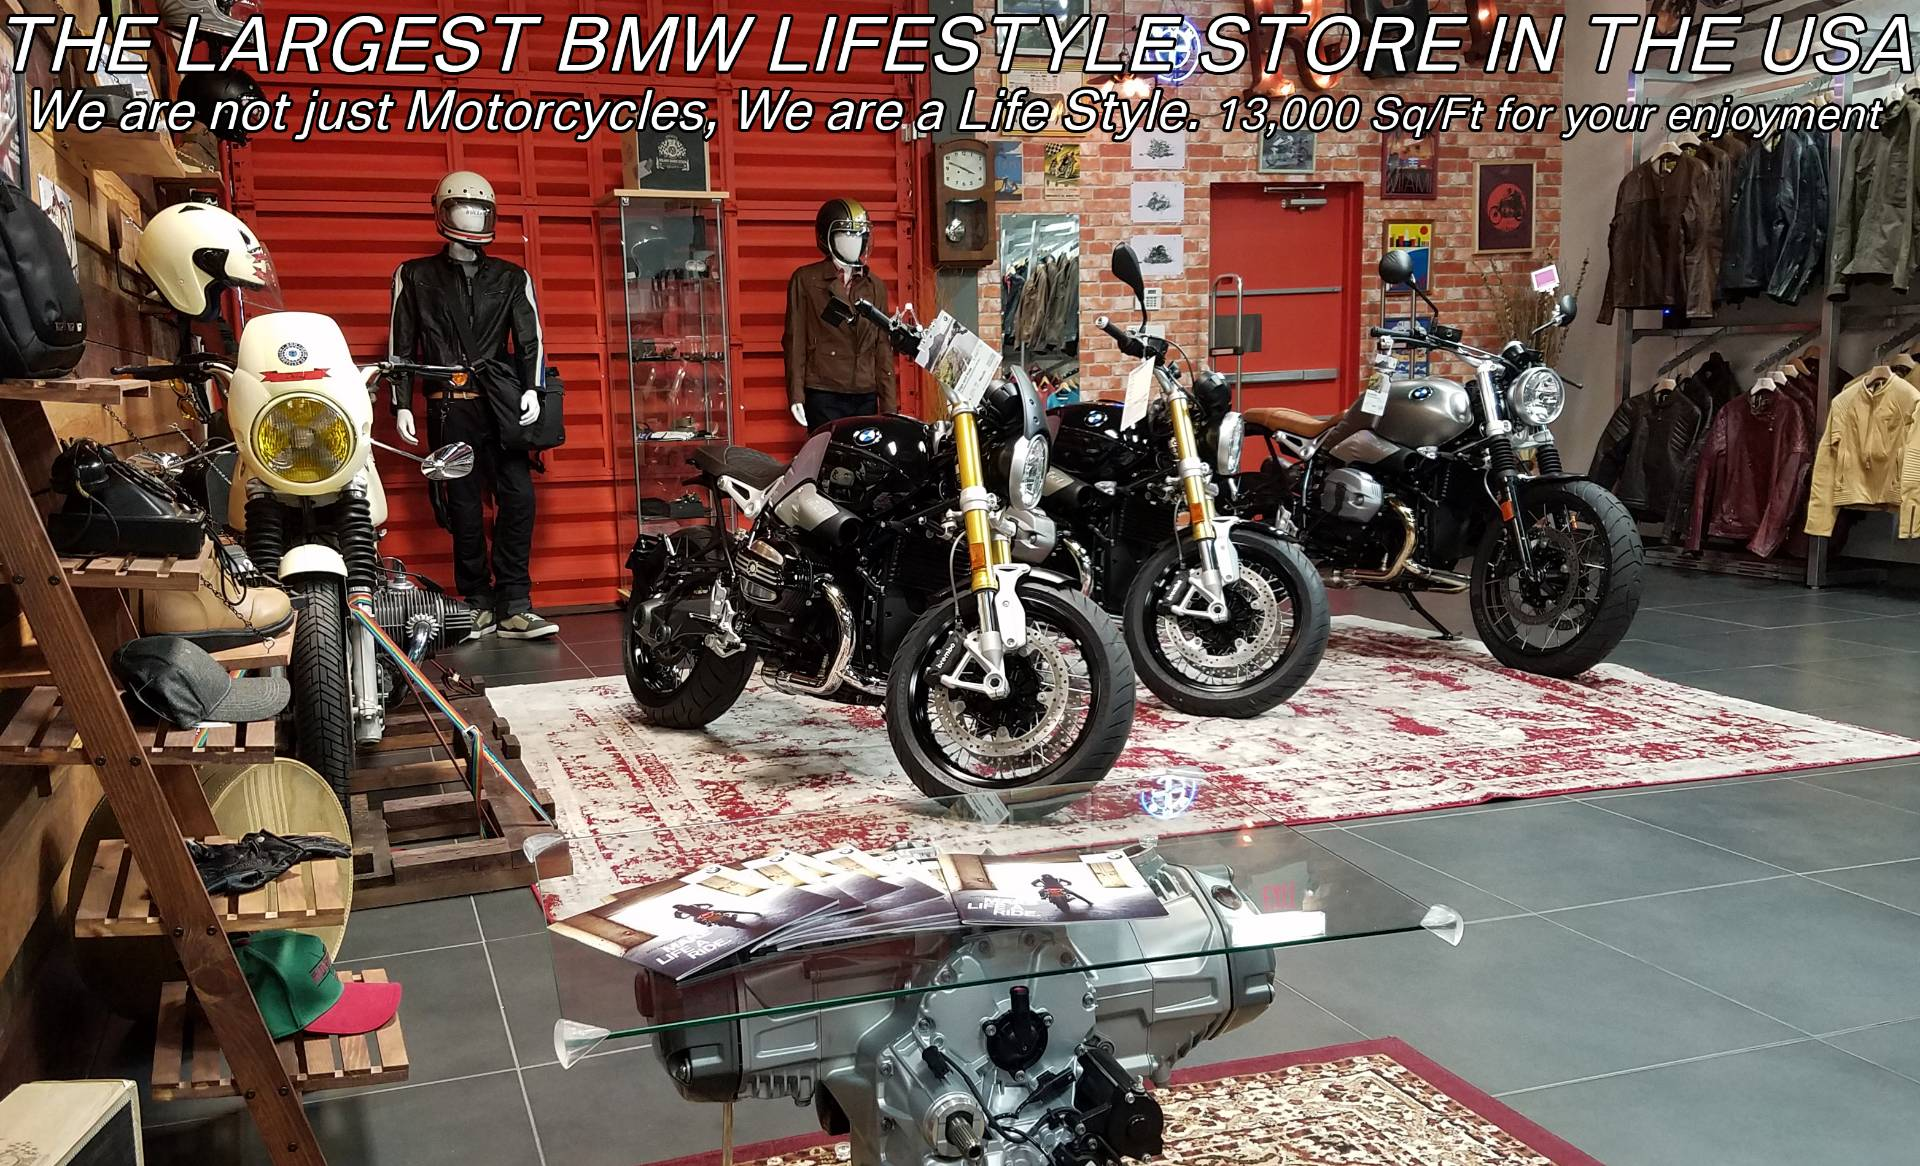 New 2019 BMW Nostalgia for sale, BMW Motorcycle Nostalgia, new BMW Motorcycle, Vintage, R7, BMW Motorcycles of Miami, Motorcycles of Miami, Motorcycles Miami - Photo 43